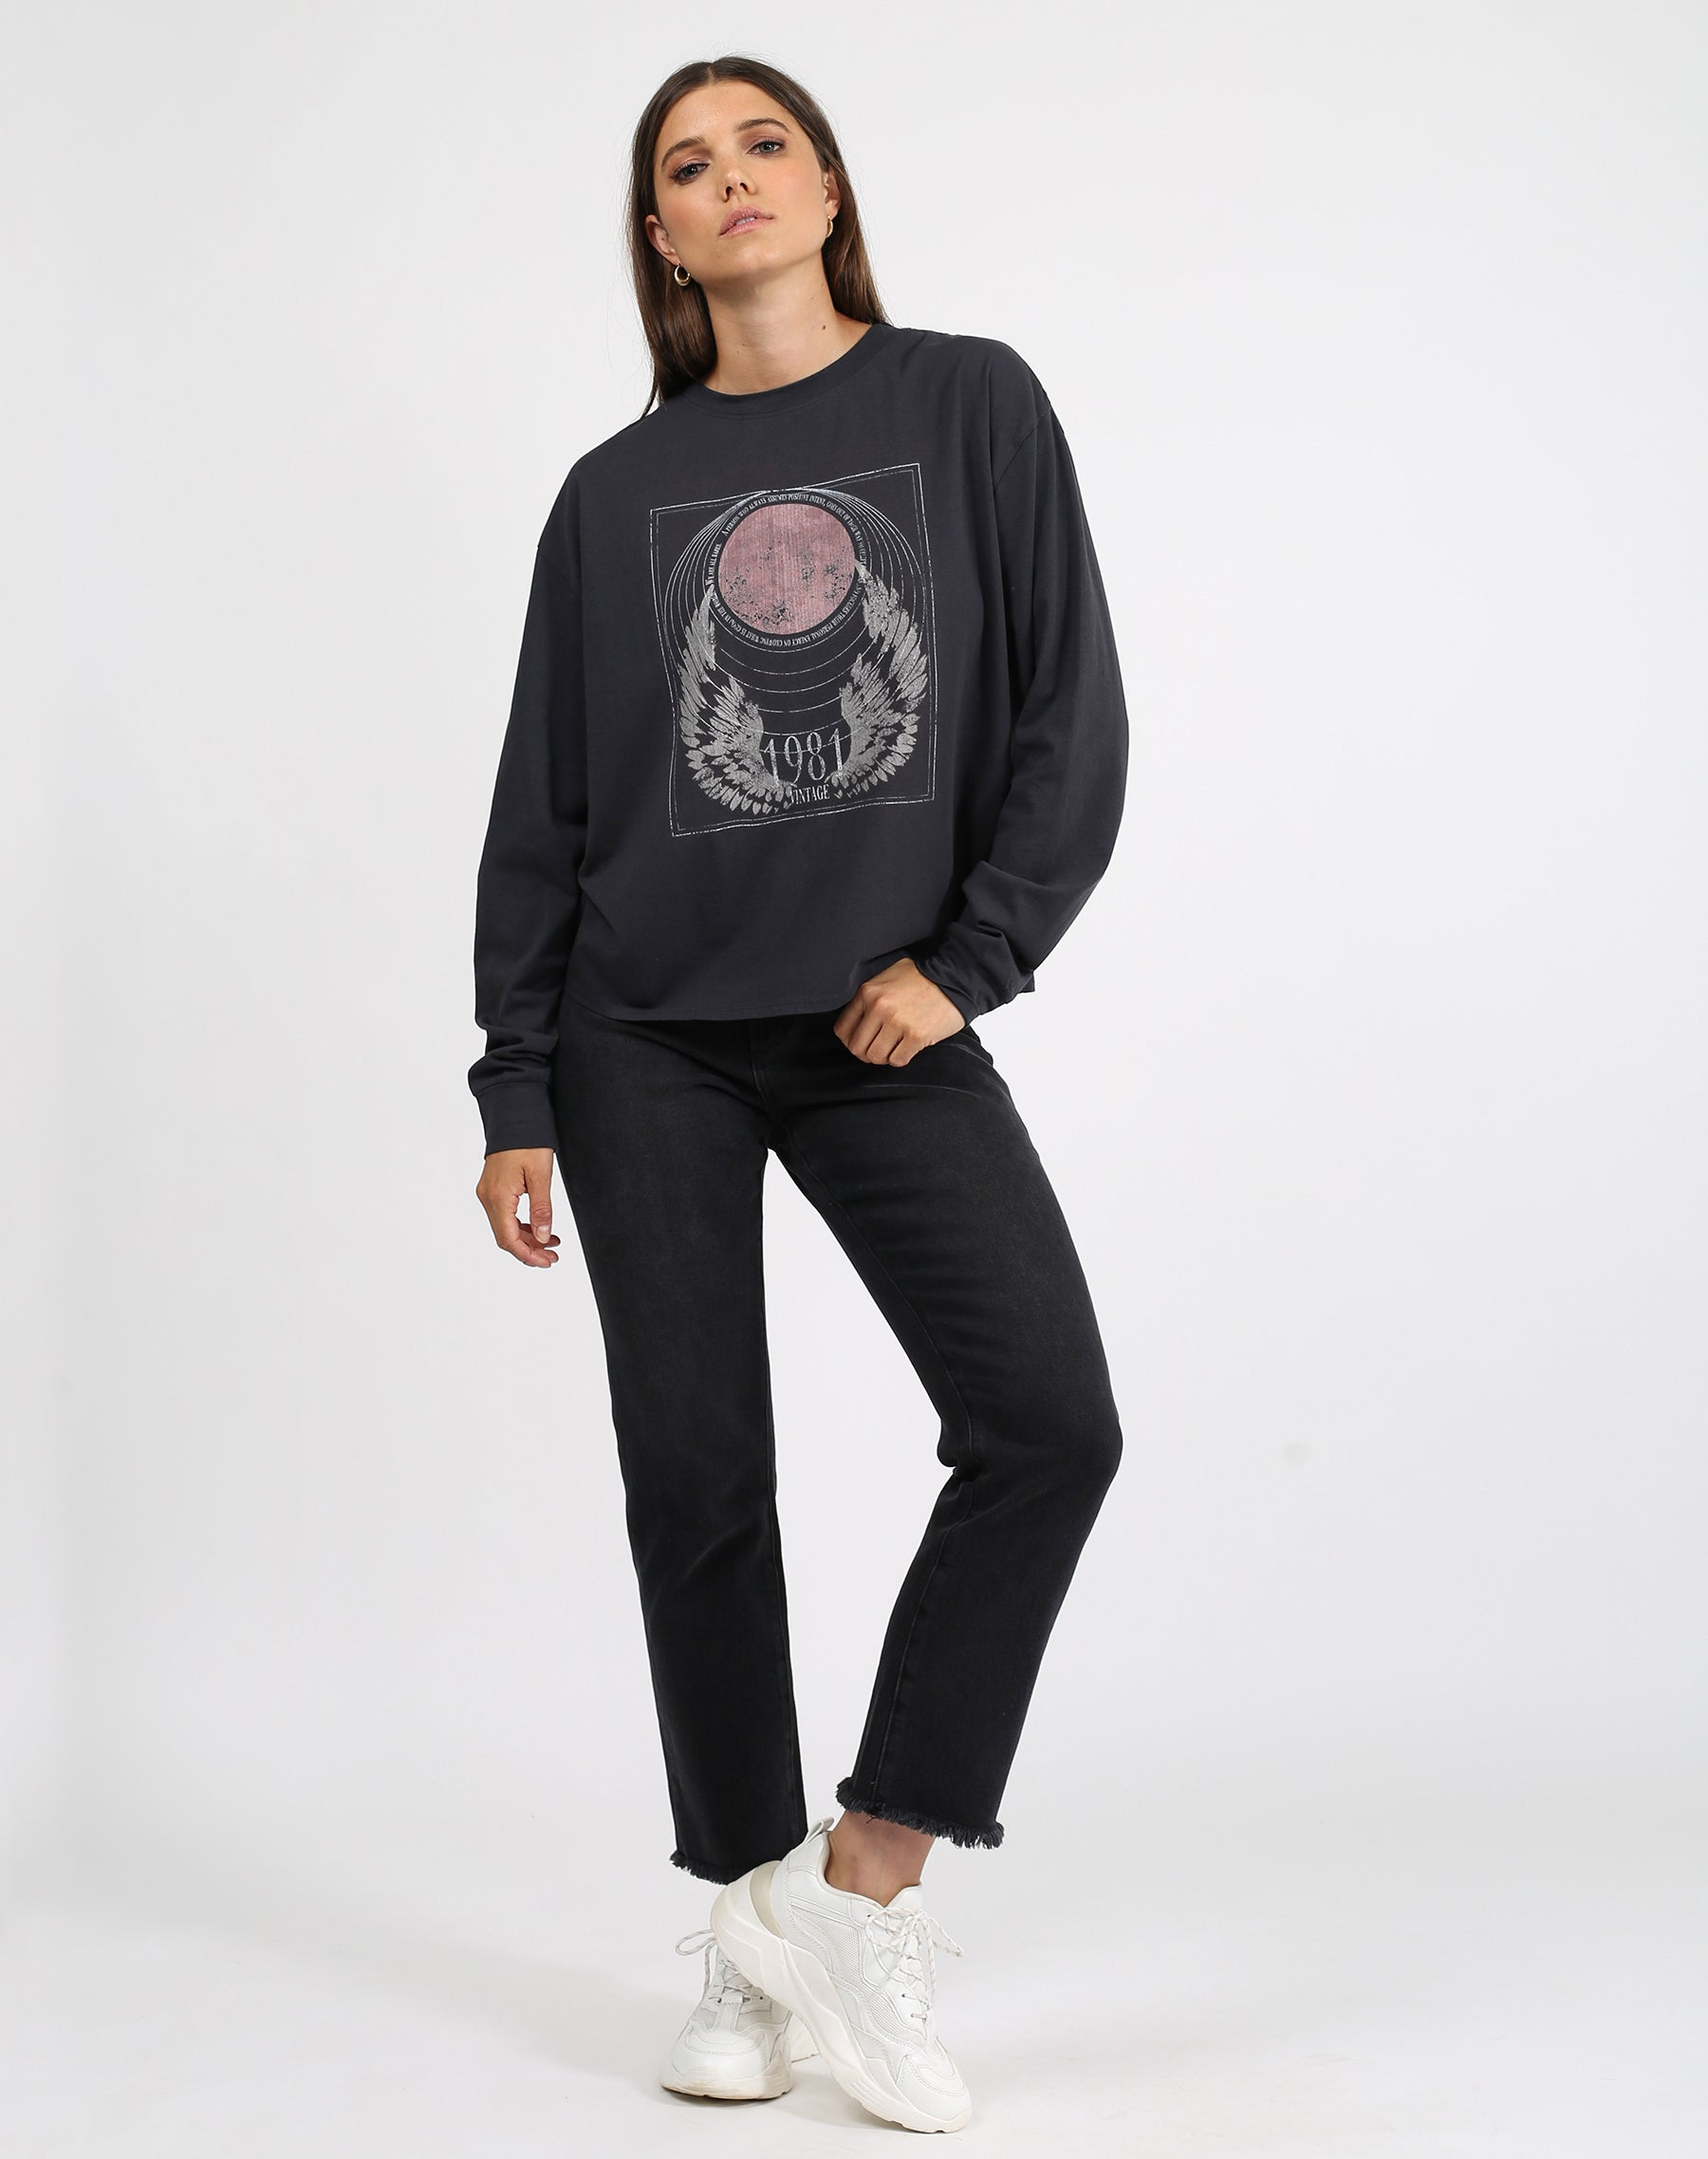 This is a photo of a model wearing the 1981 mystic long sleeve boxy tee crew neck in charcoal by brunette the label.